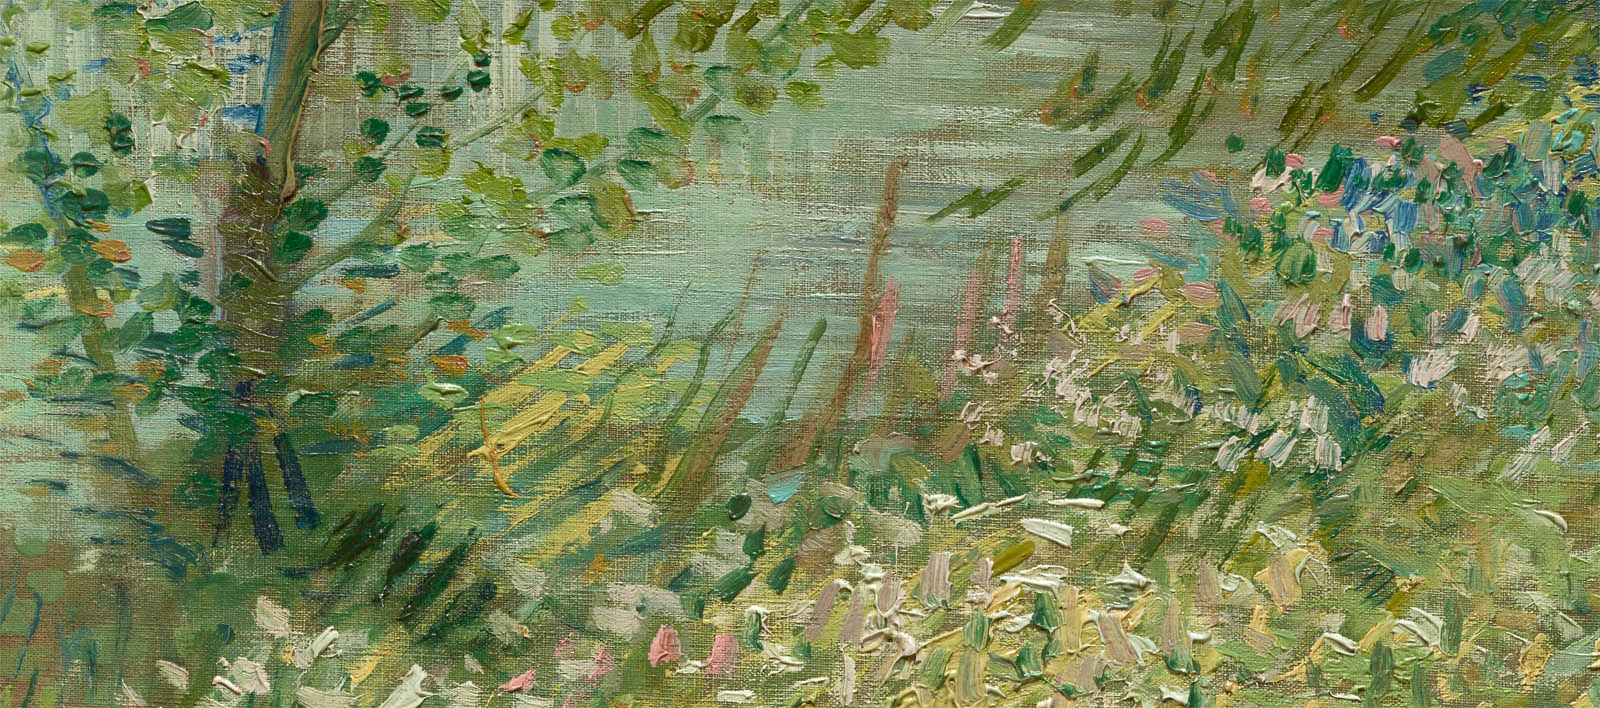 River Bank in Springtime (1887-d-2)